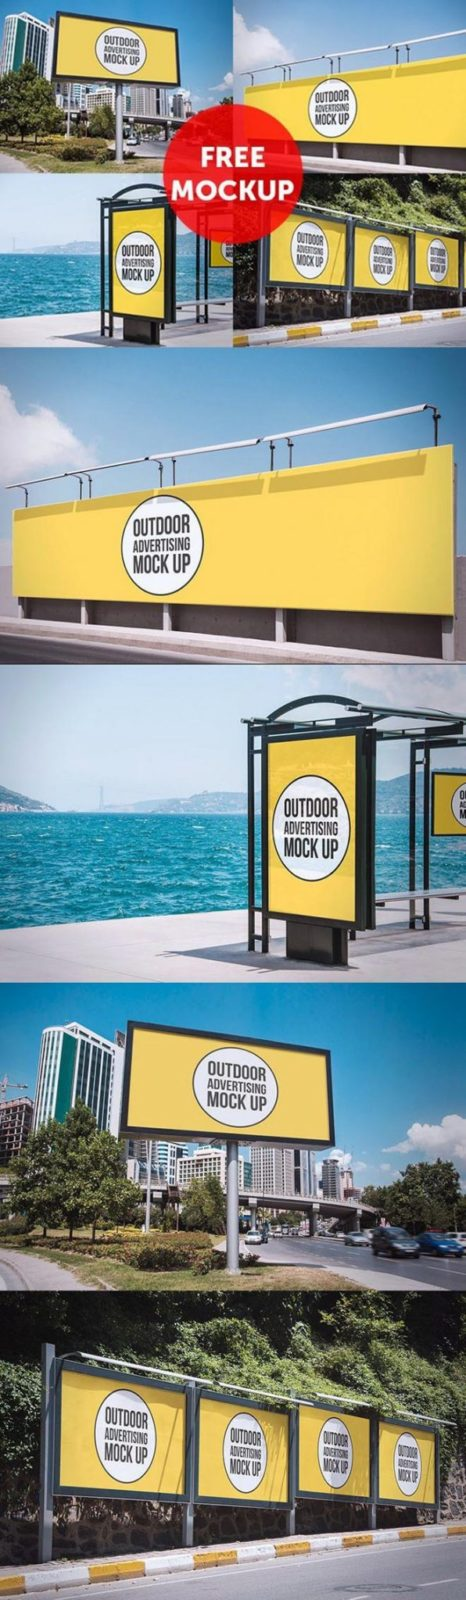 free-psd-outdoor-advertising-mockup